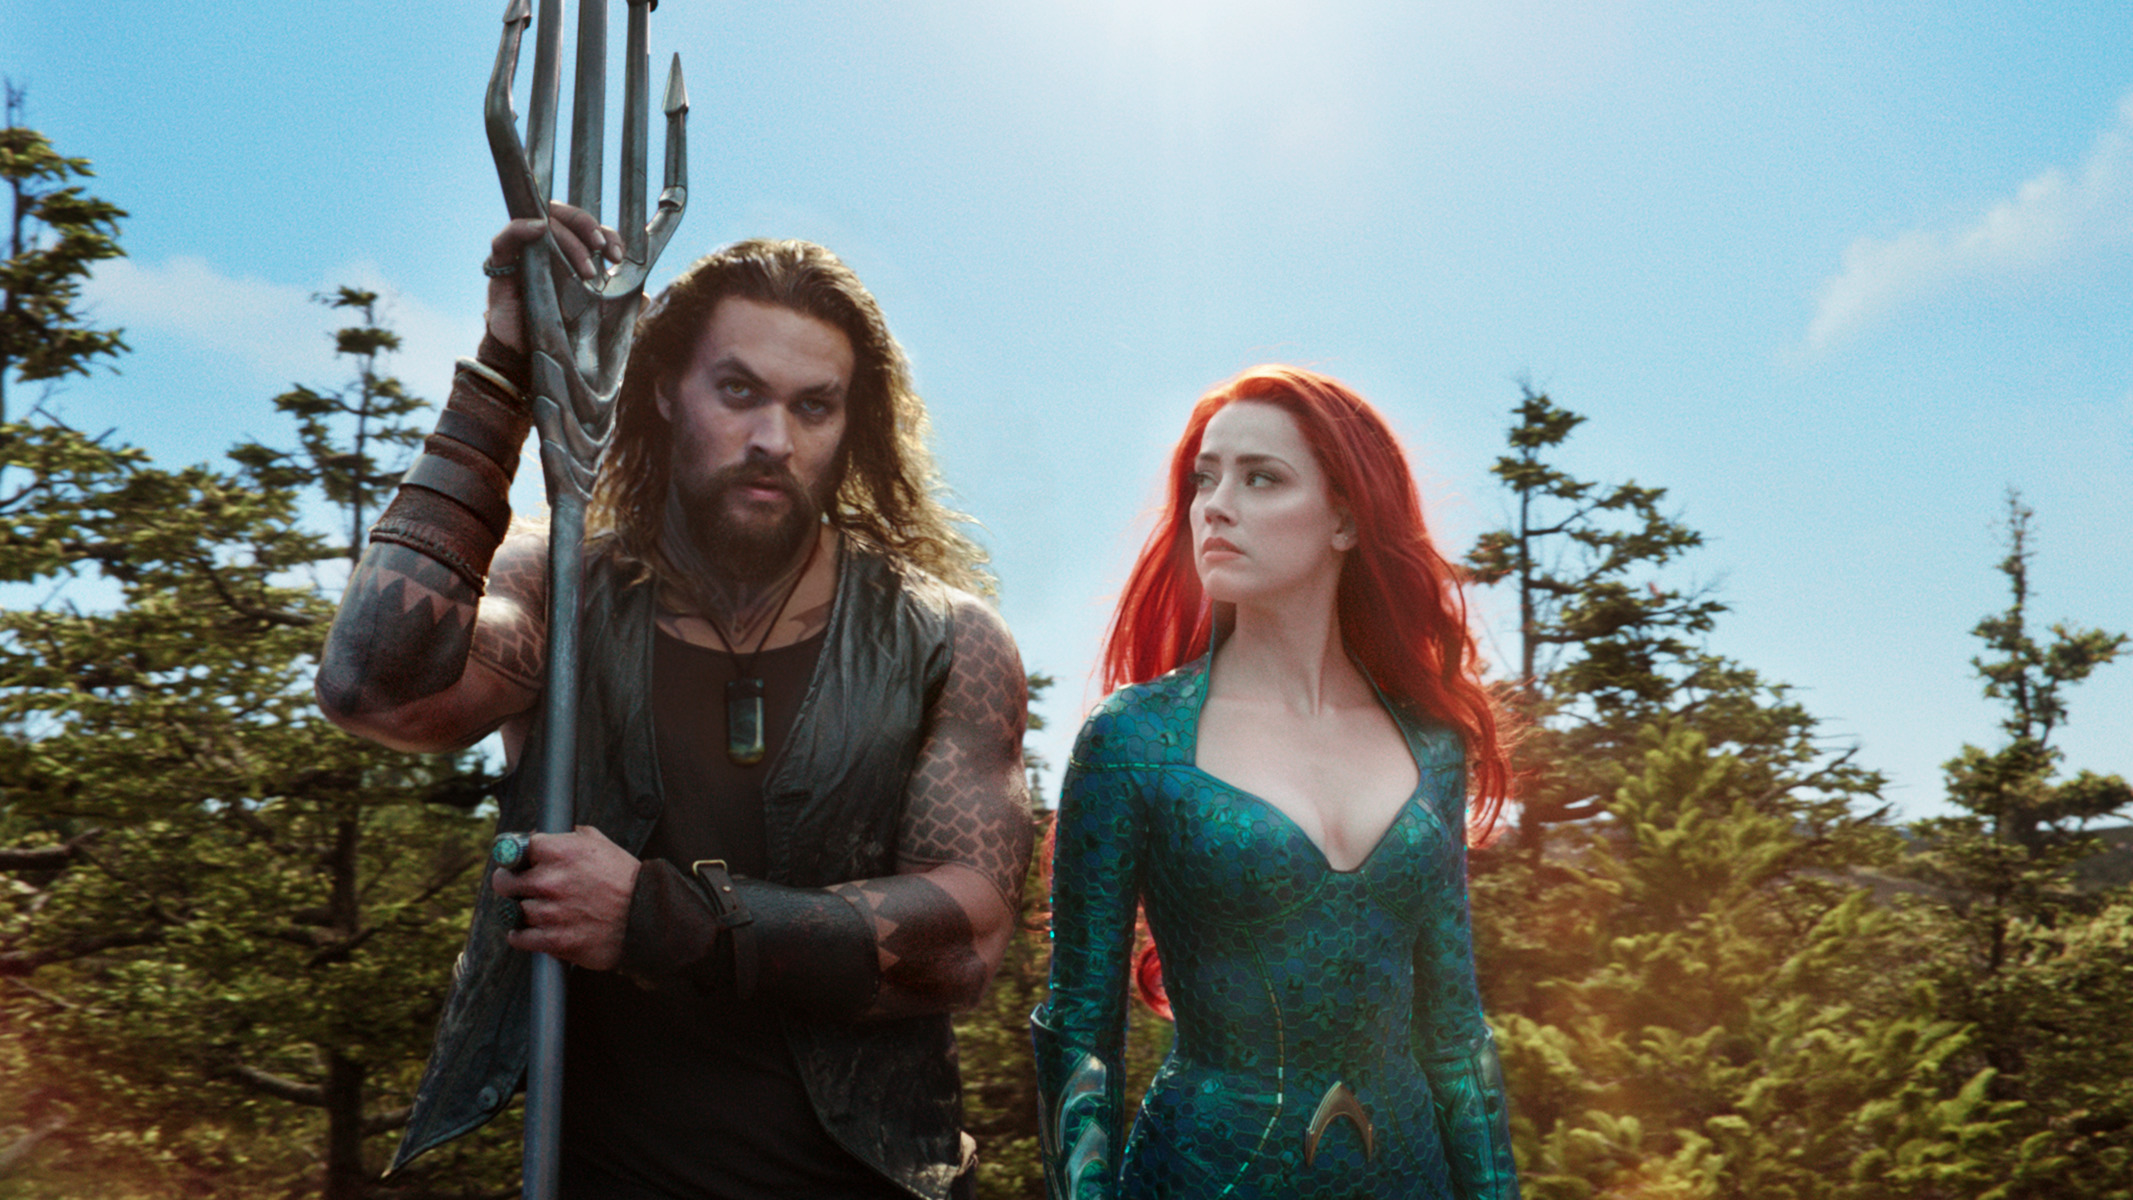 Jason Momoa and Amber Heard in Aquaman. Not all tridents are created equal.